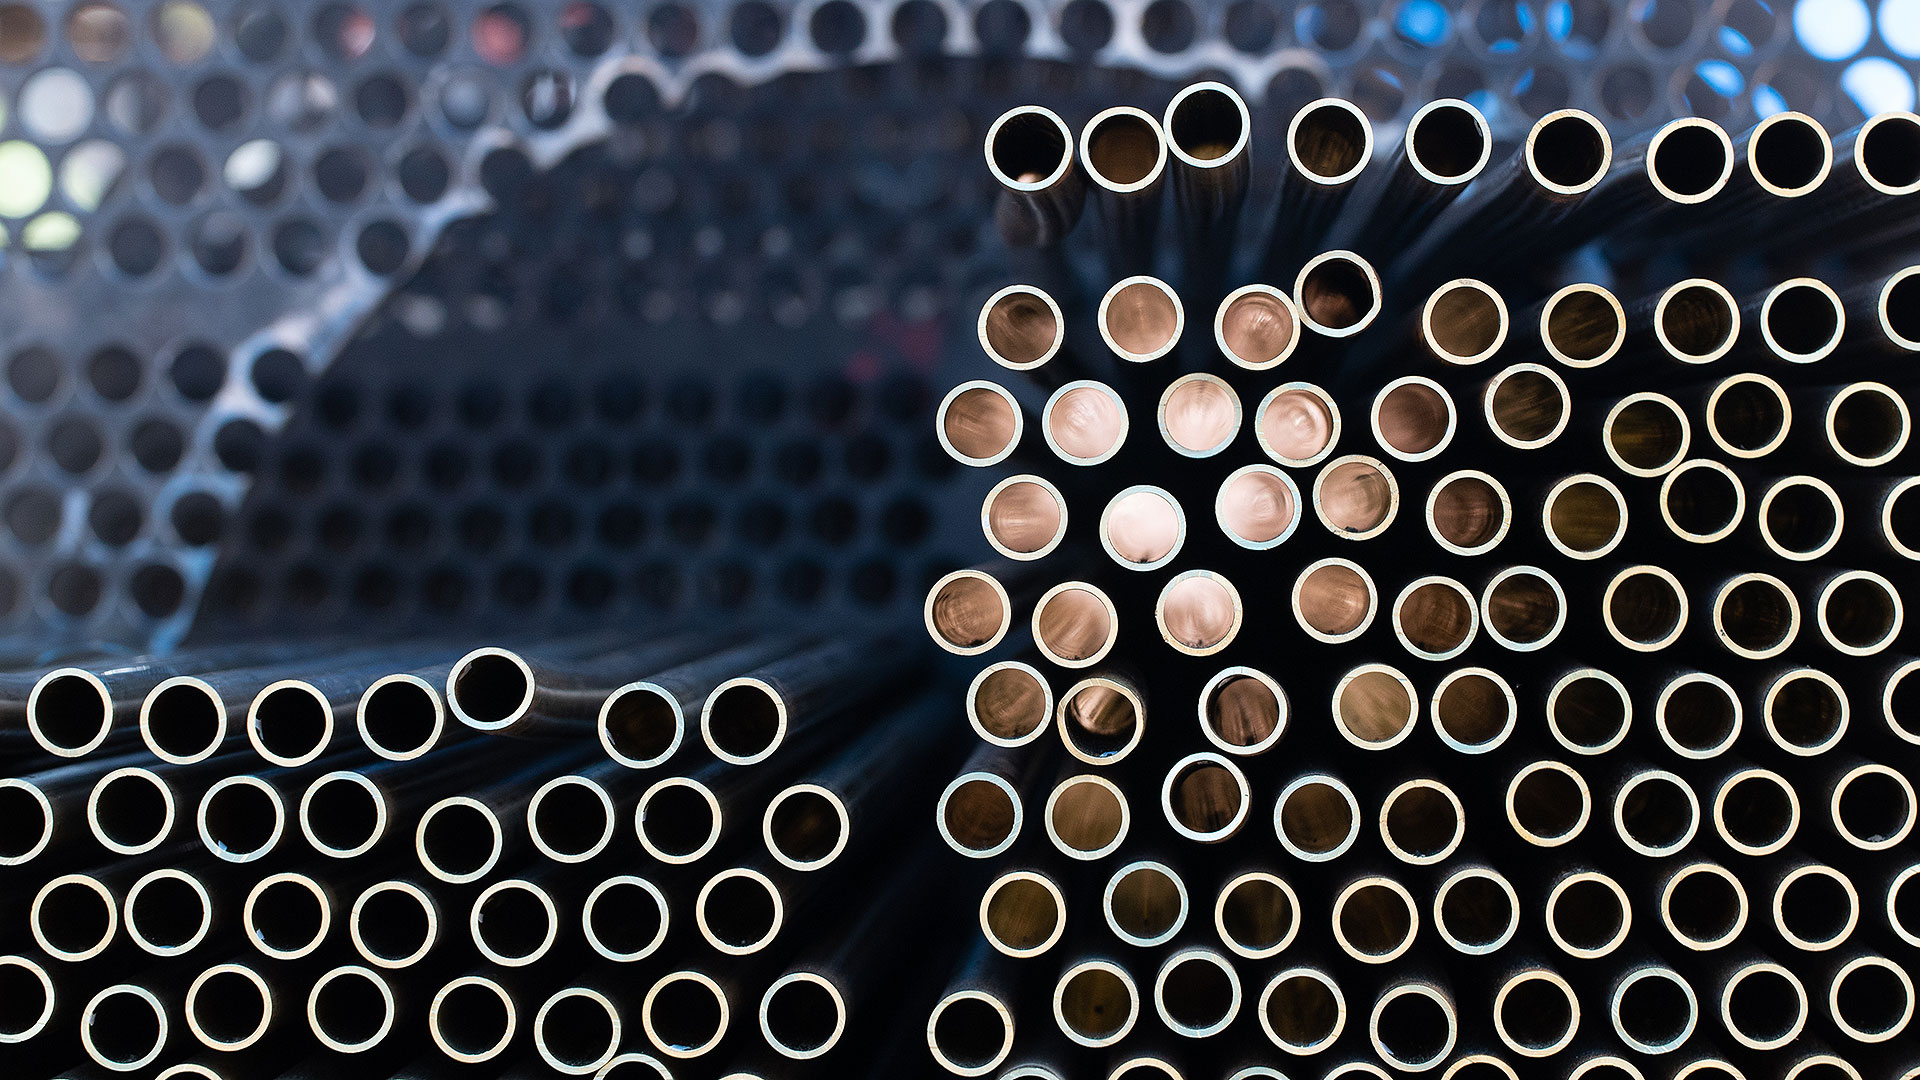 Industrial Heat Exchanger Tubes